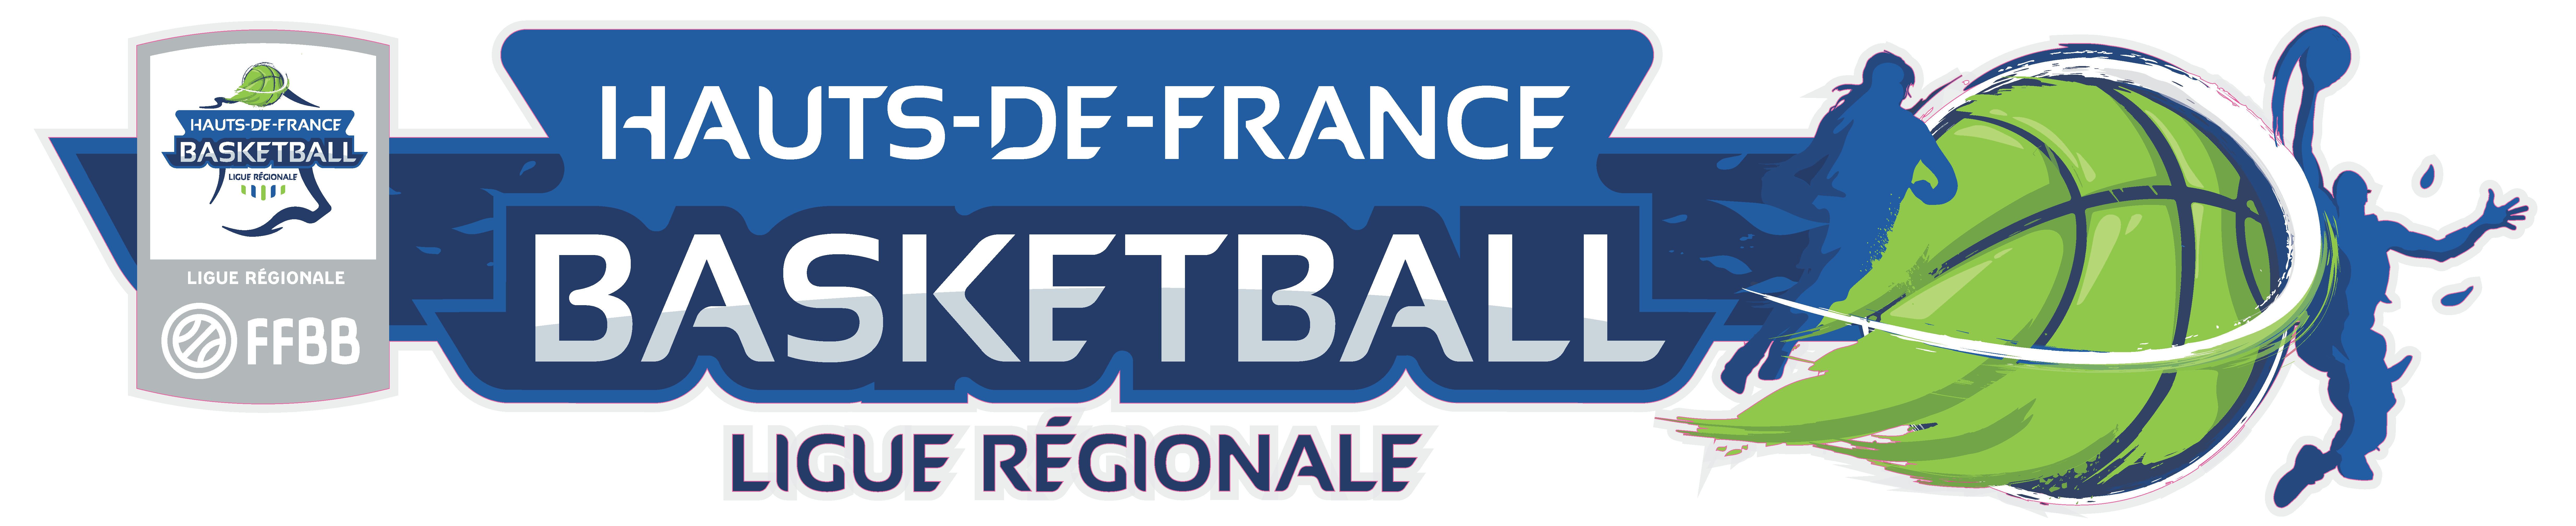 Ligue des Hauts de France de Basketball